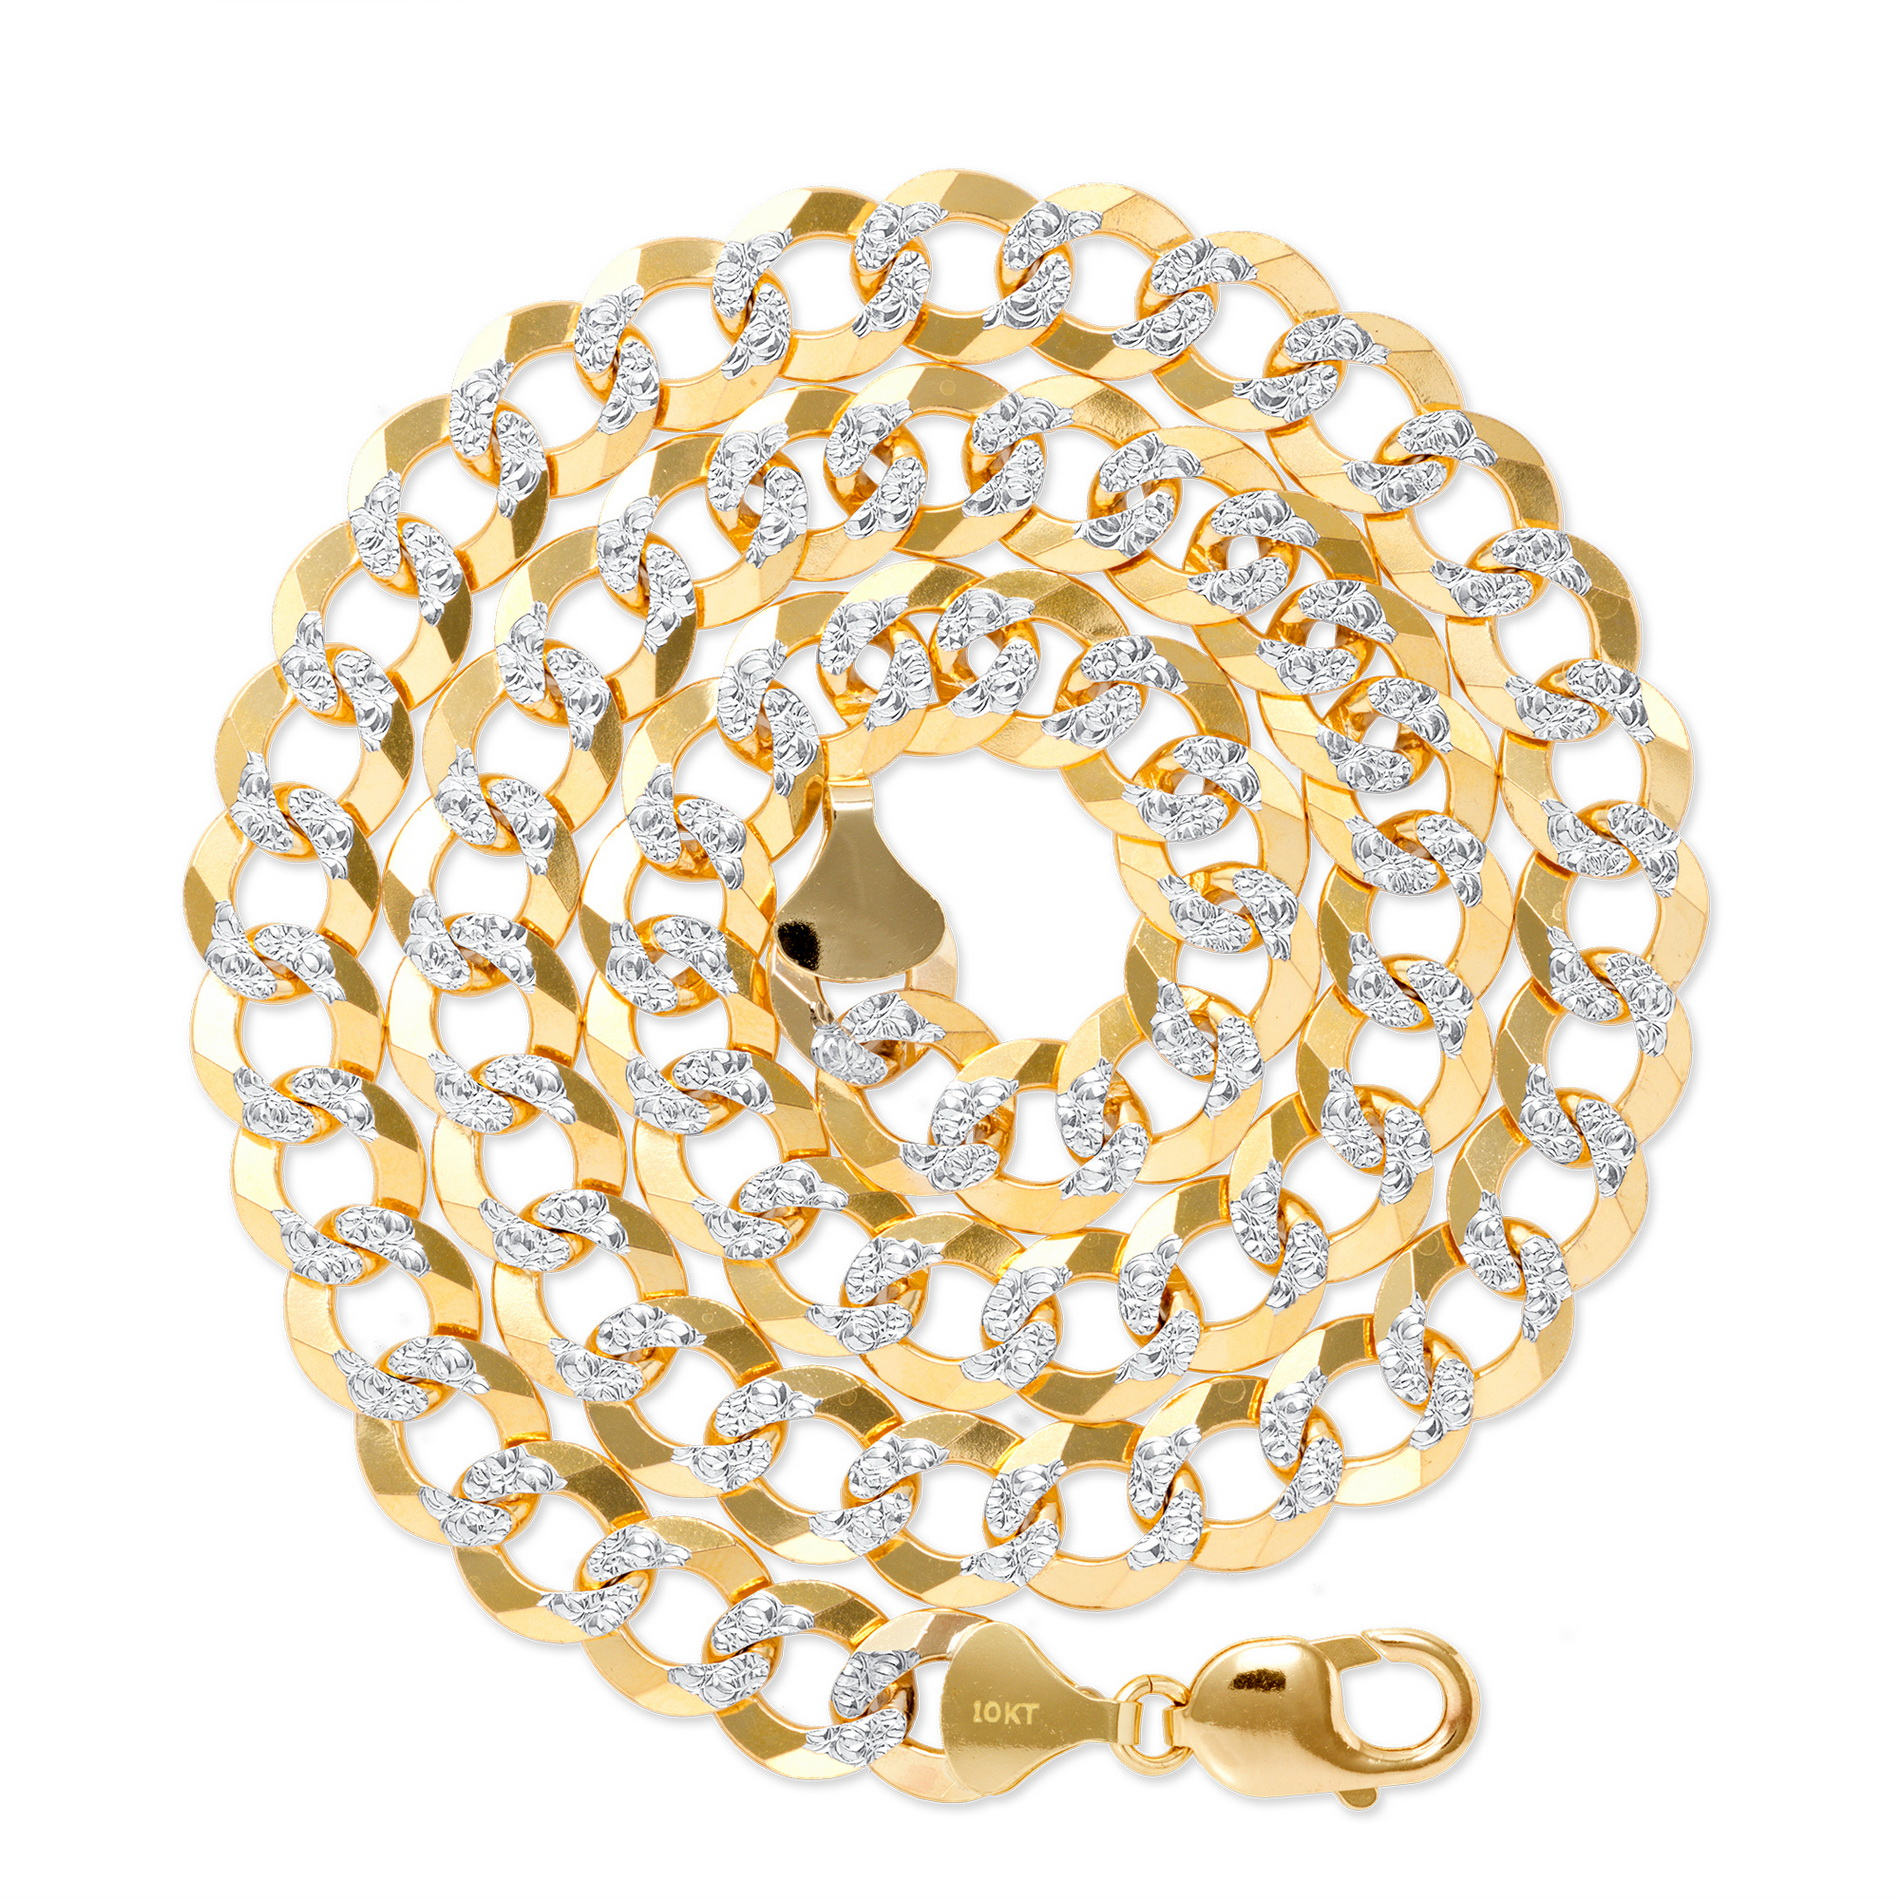 10k-Yellow-Gold-Solid-11-5mm-Diamond-Cut-Pave-Cuban-Curb-Chain-Necklace-22-034-30-034 thumbnail 14